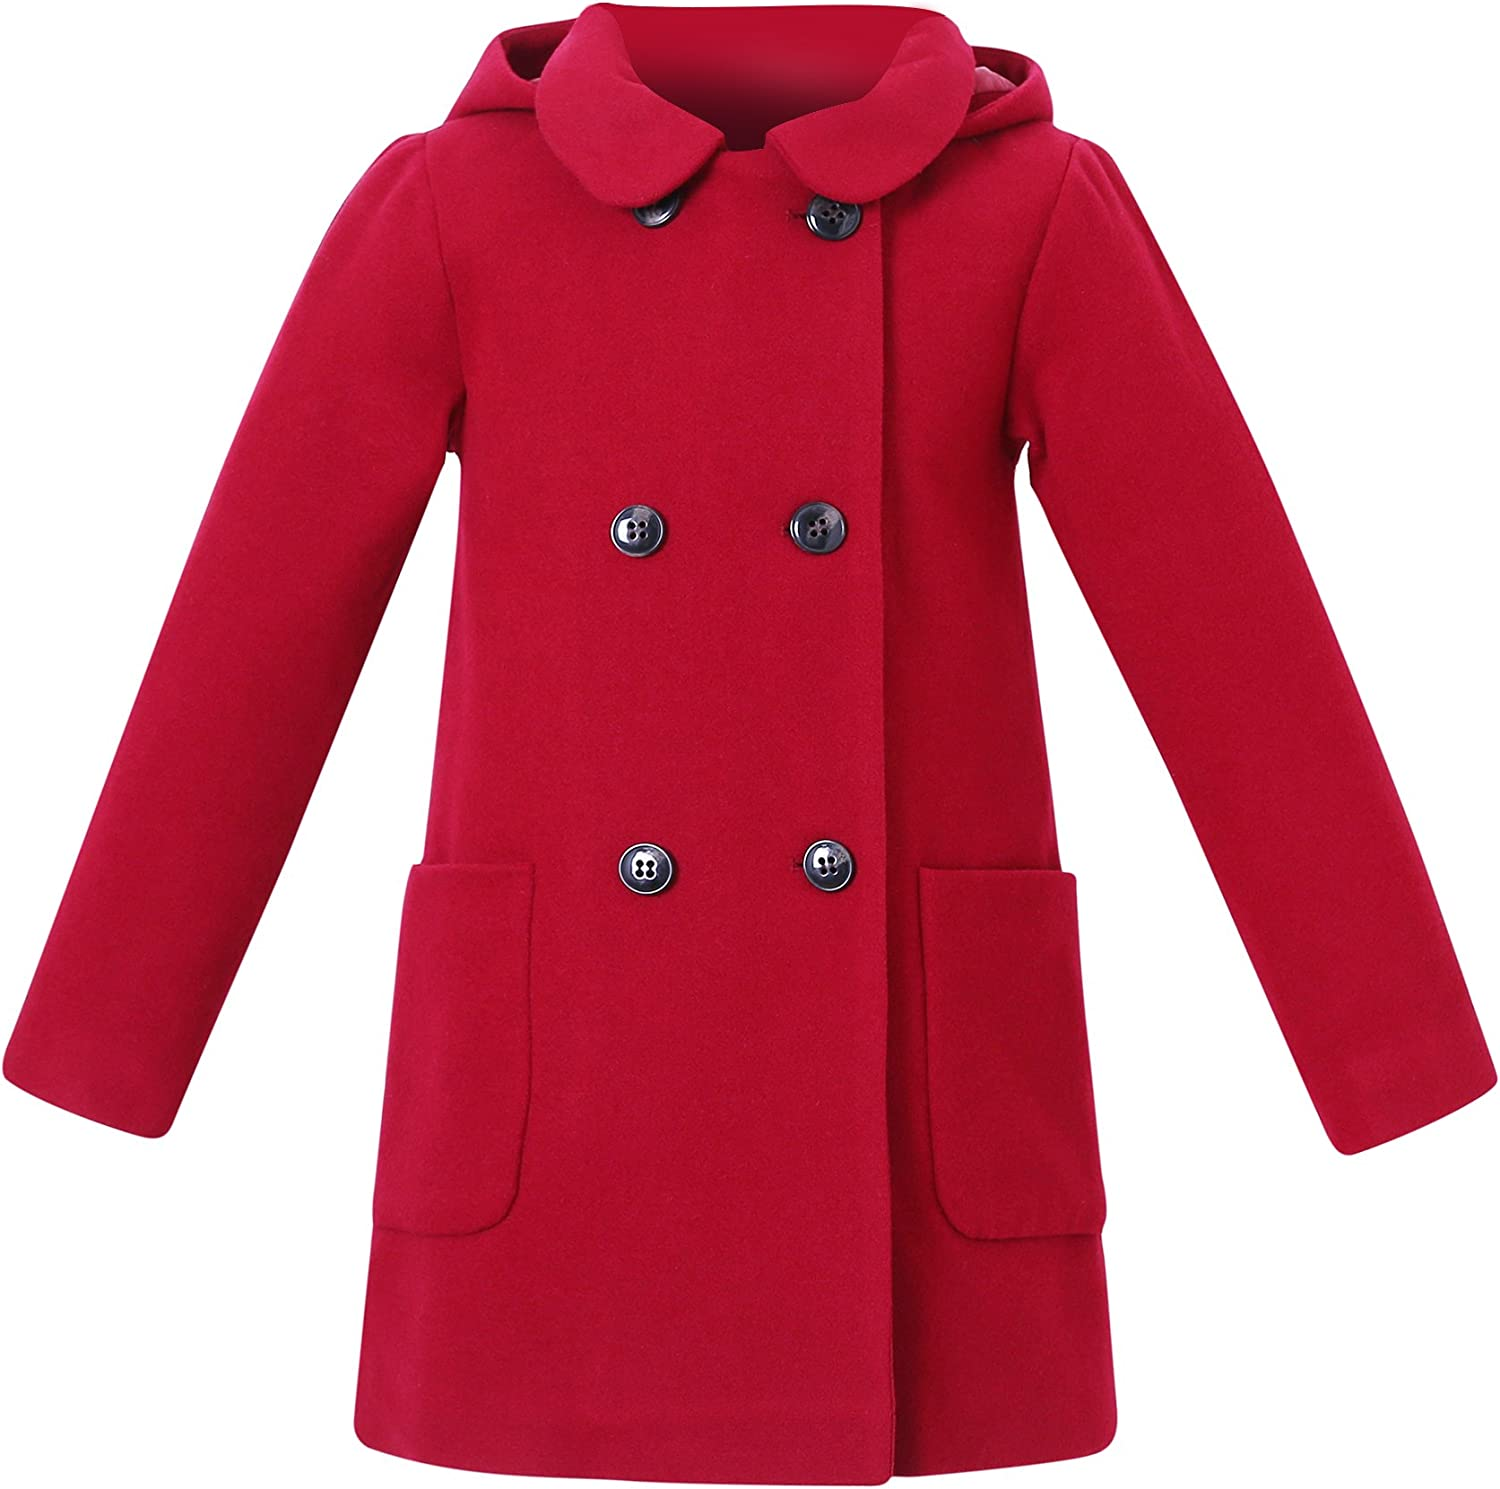 Richie House Girls Wool Double-Breasted Jacket Size 1-10Y RH2517